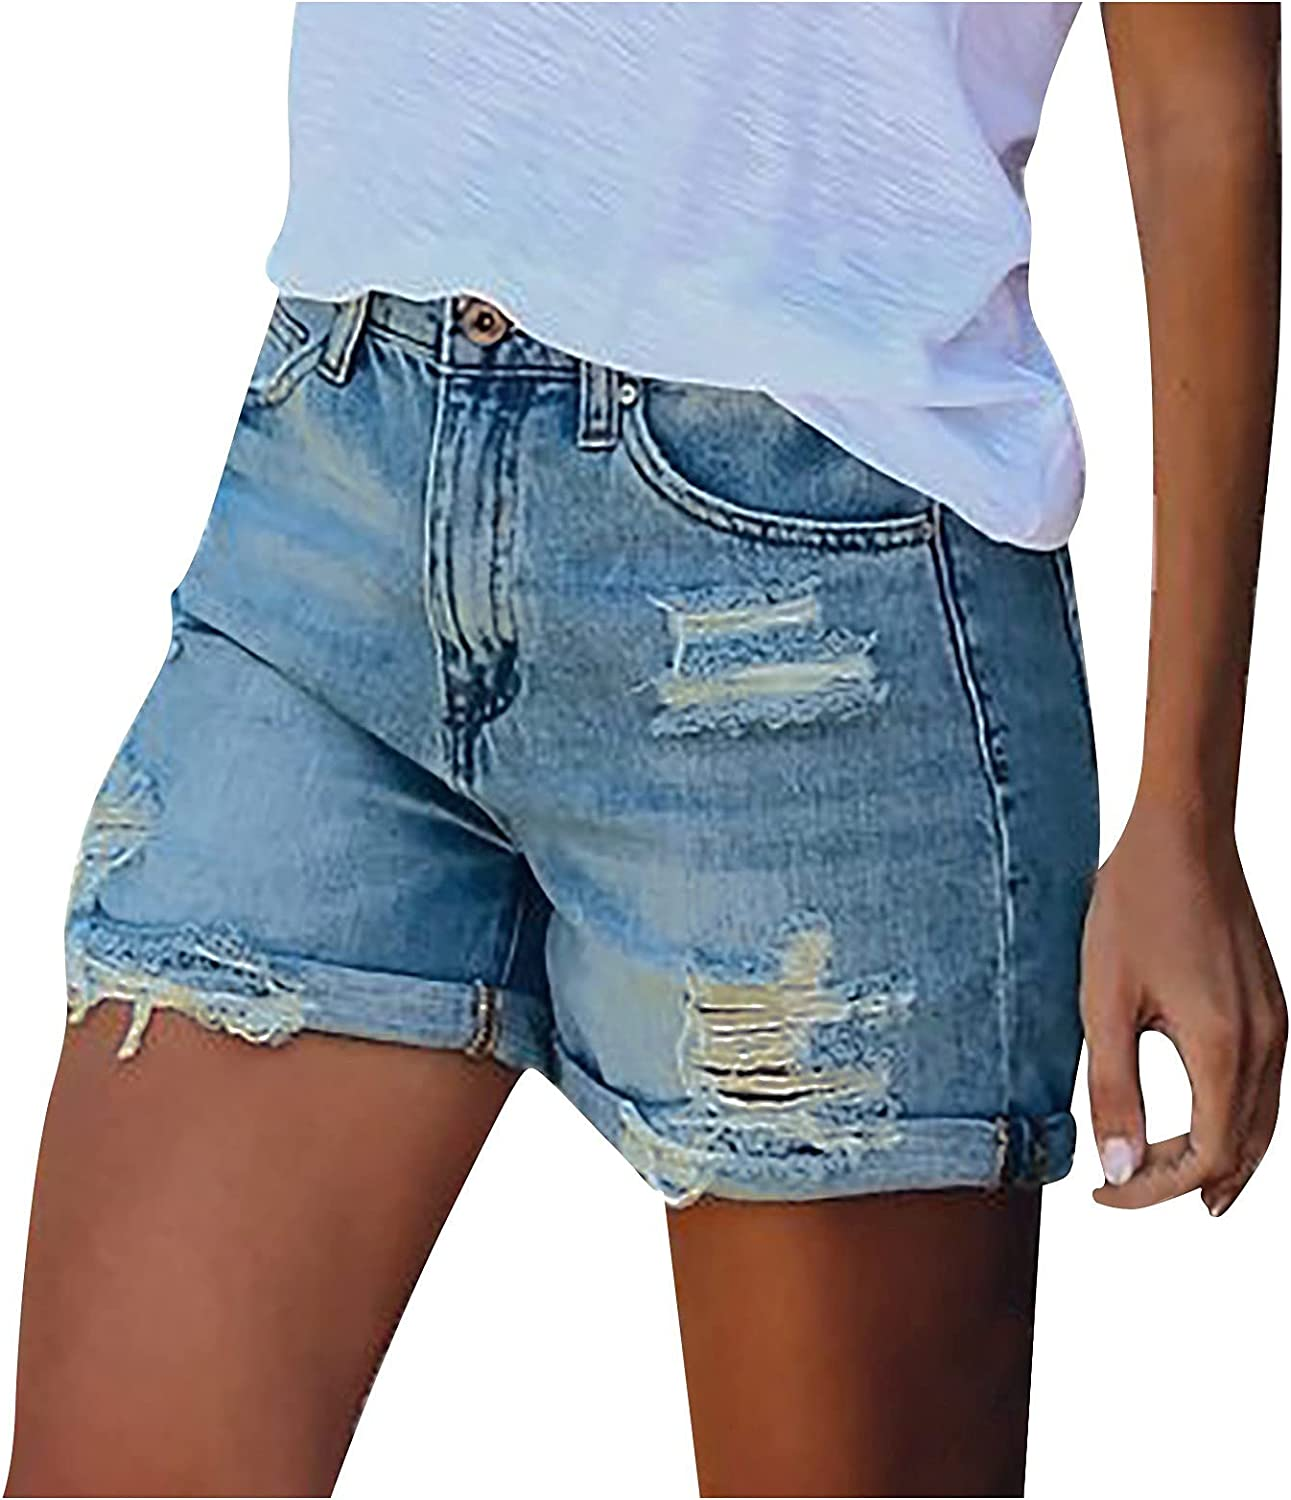 Astrid Womens Comfy Summer Shorts Elastic Waist Pockets Casual Bull-Puncher Knickers